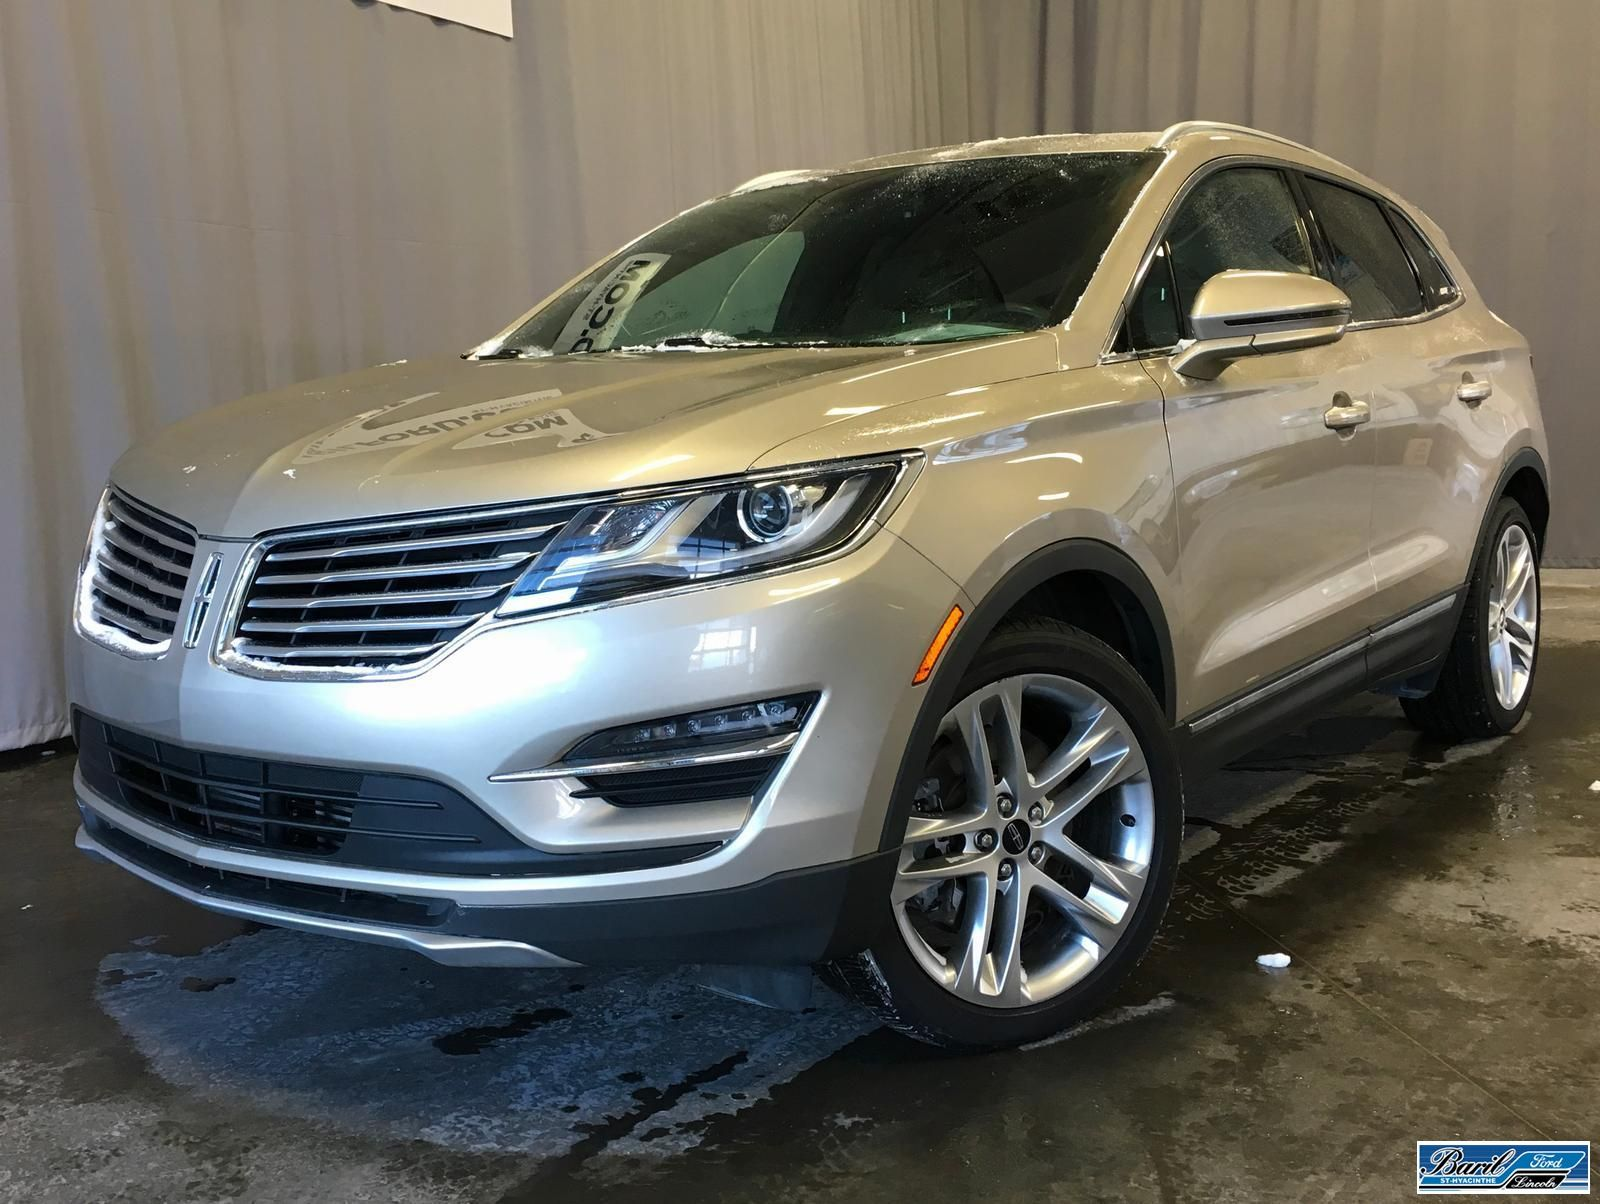 2015 Lincoln MKC 2.0L AWD Lincoln mkc, Awd, Suv